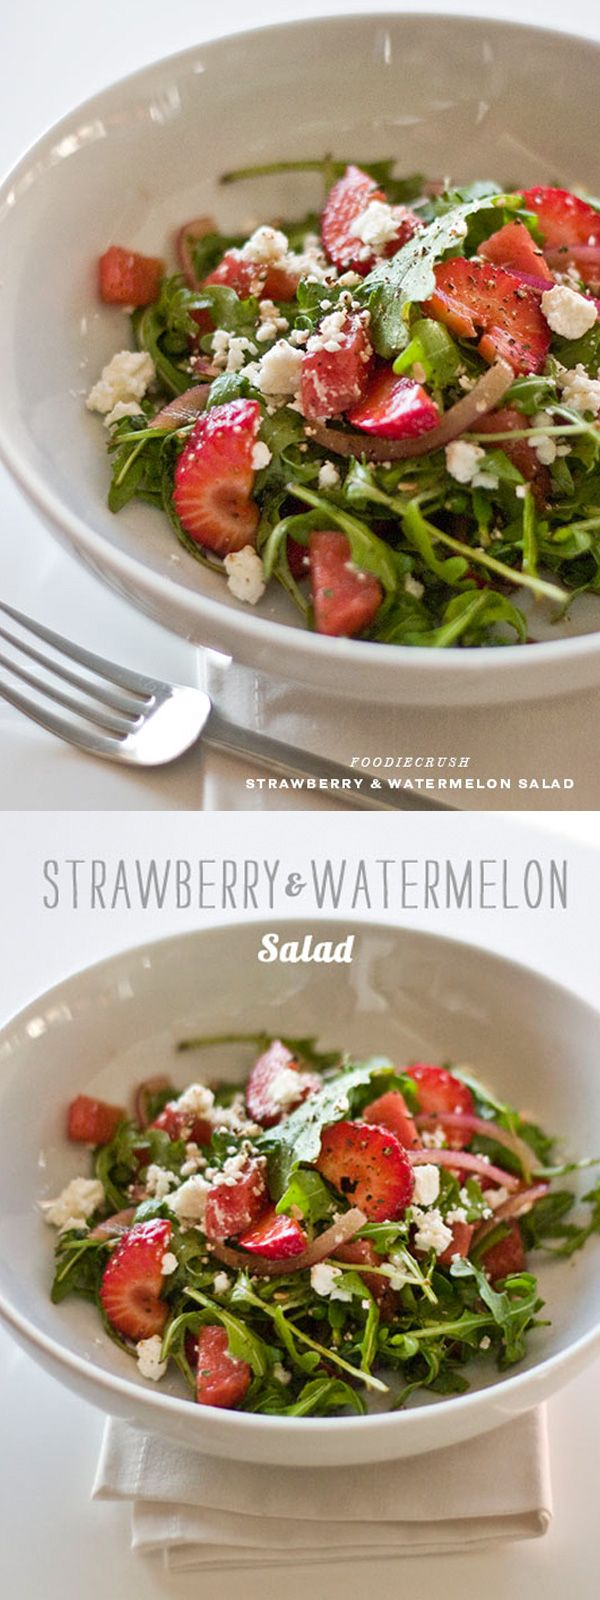 Strawberry Watermelon Salad with Arugula and Feta on foodiecrush.com with has an easy balsamic dressing sweetened with agave